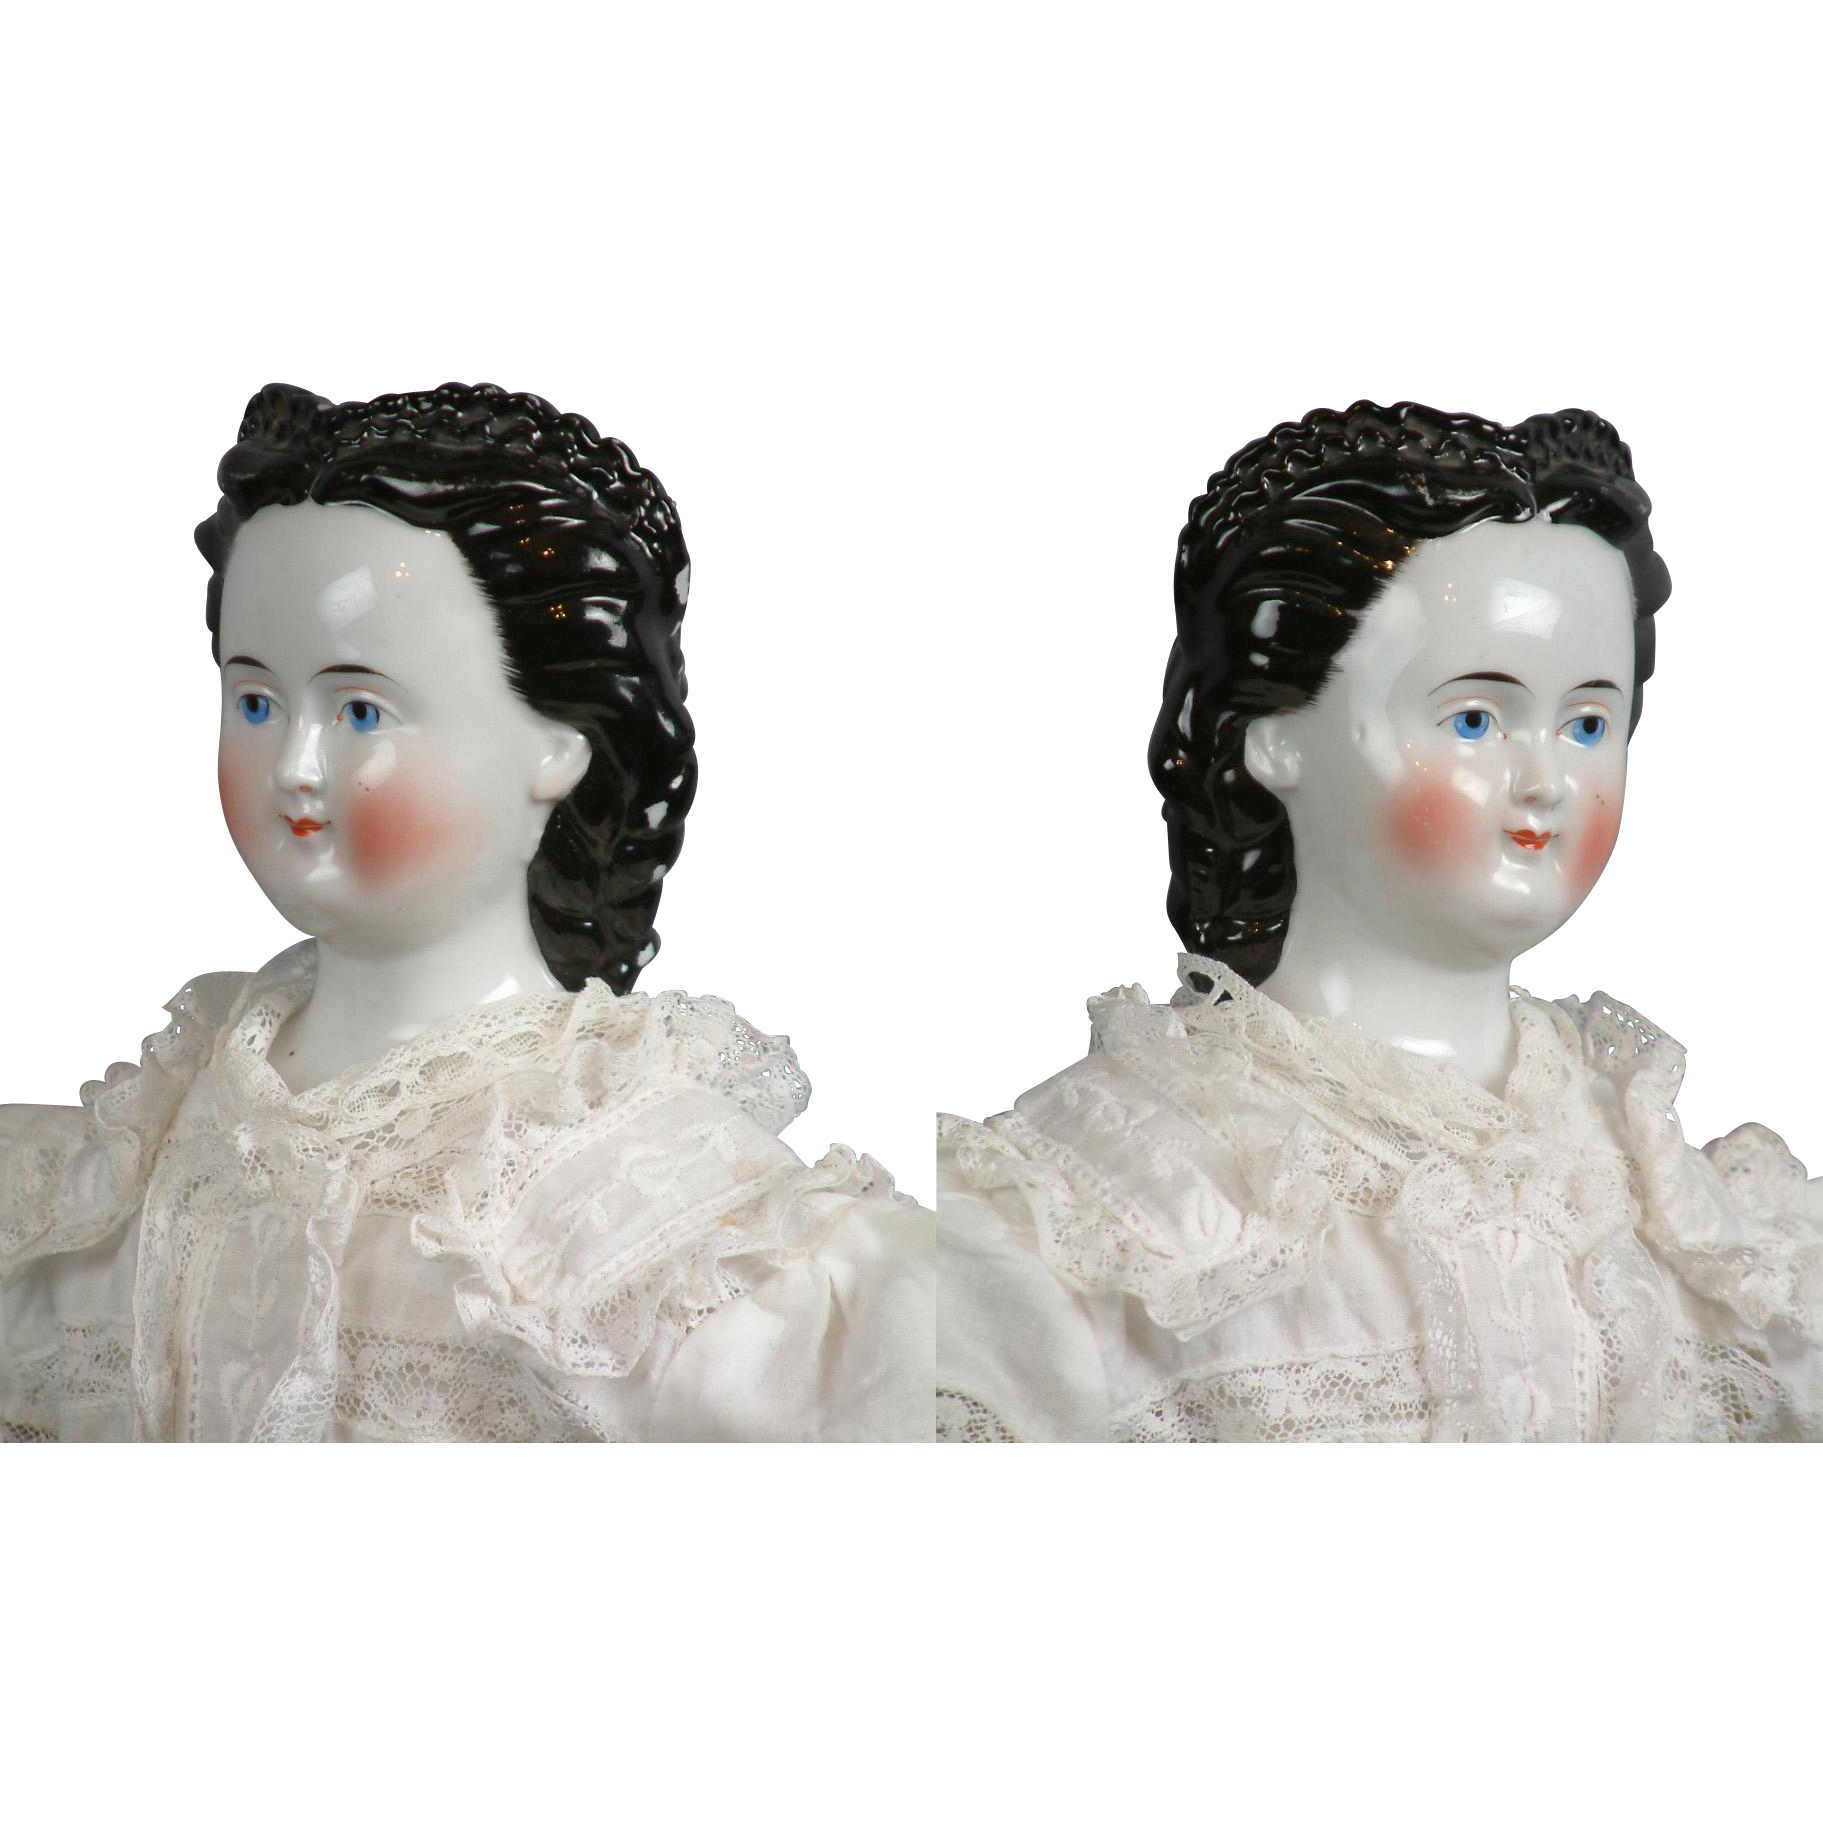 "Exceedingly Rare 25"" Antique China Lady with Lace Front Snood in White Summer Gown by Conta Boehme"